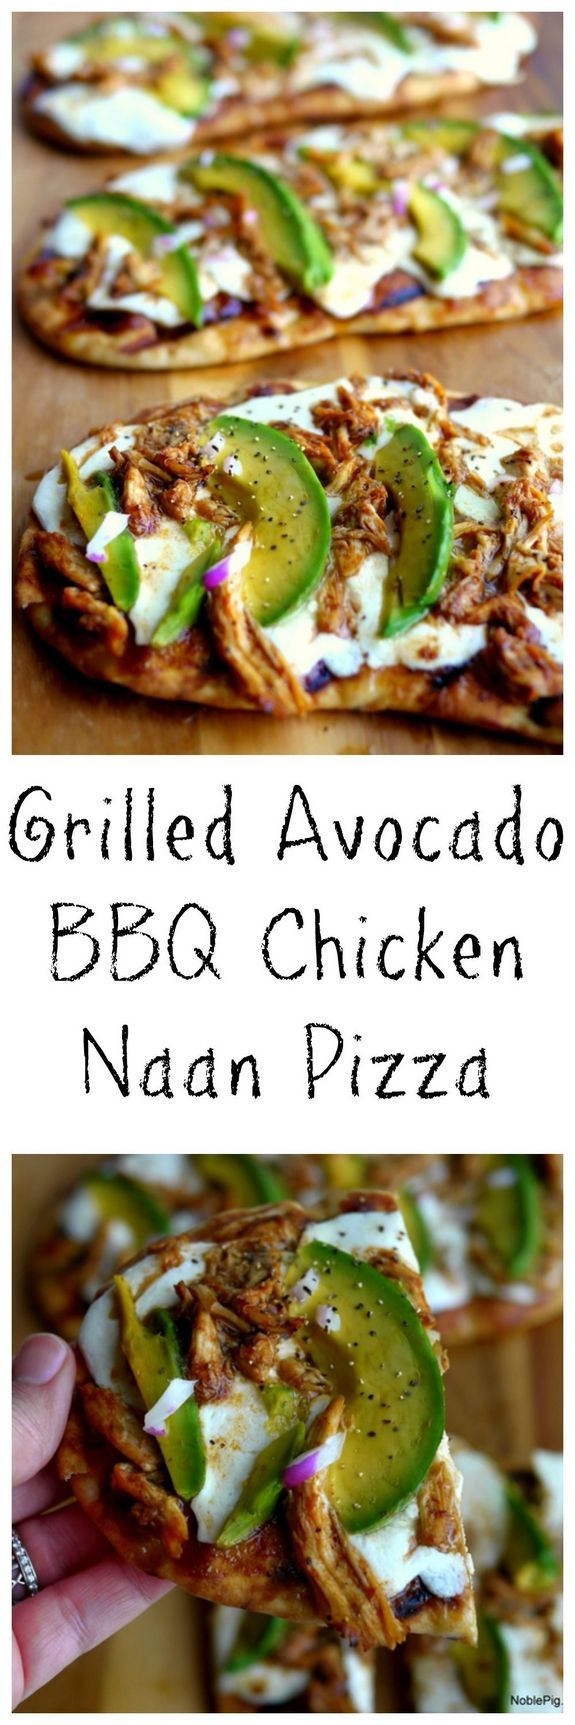 Grilled Avocado-Barbecue Chicken Naan Pizza from NoblePig.com.